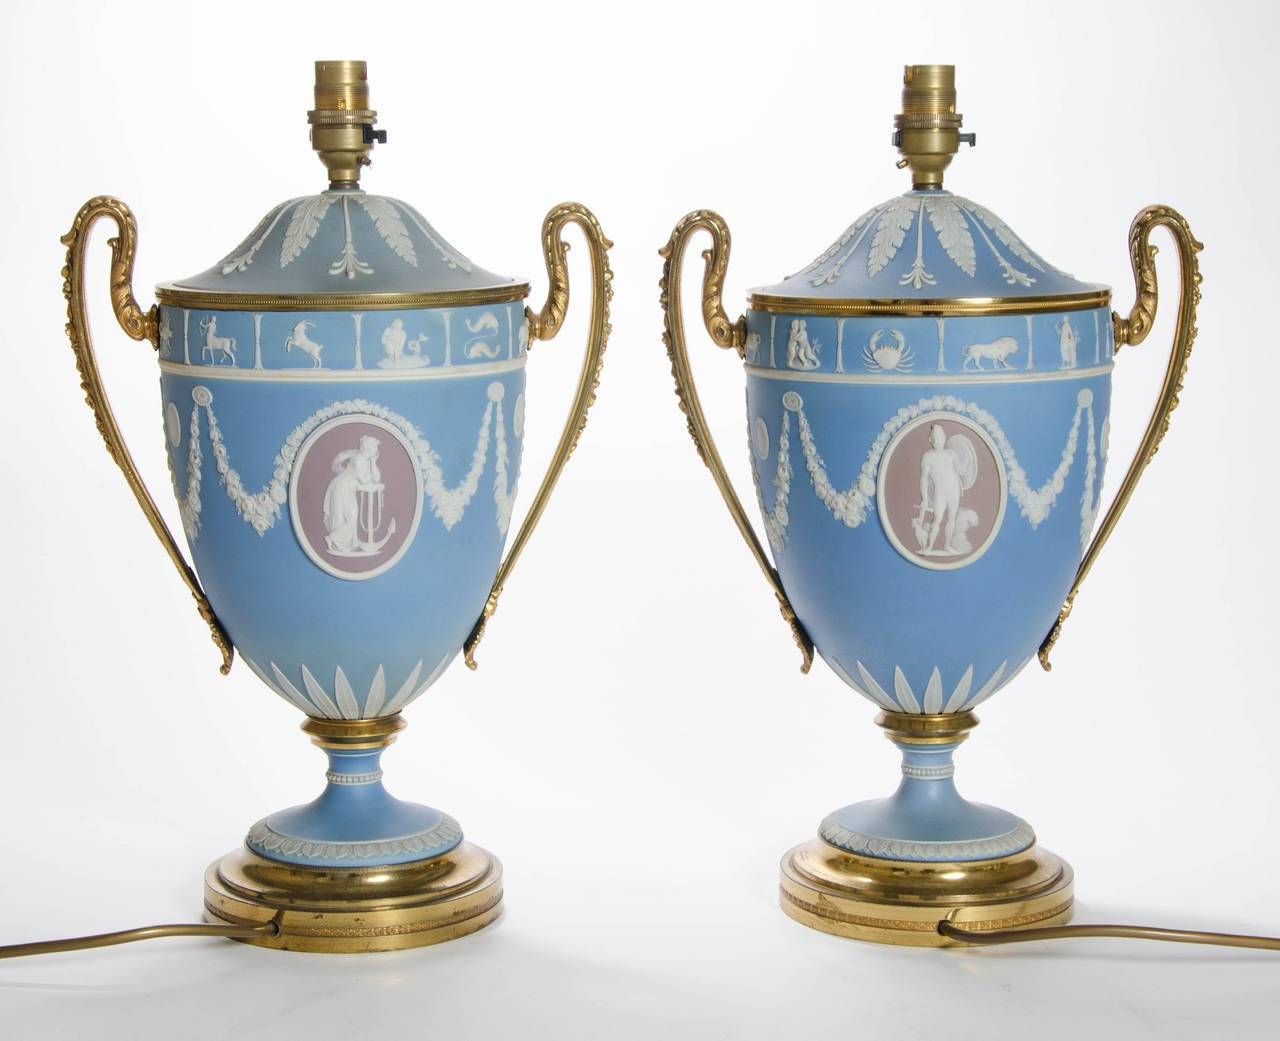 A Pair of Wedgwood Vases as Lamps with ormolu handles and bases 3